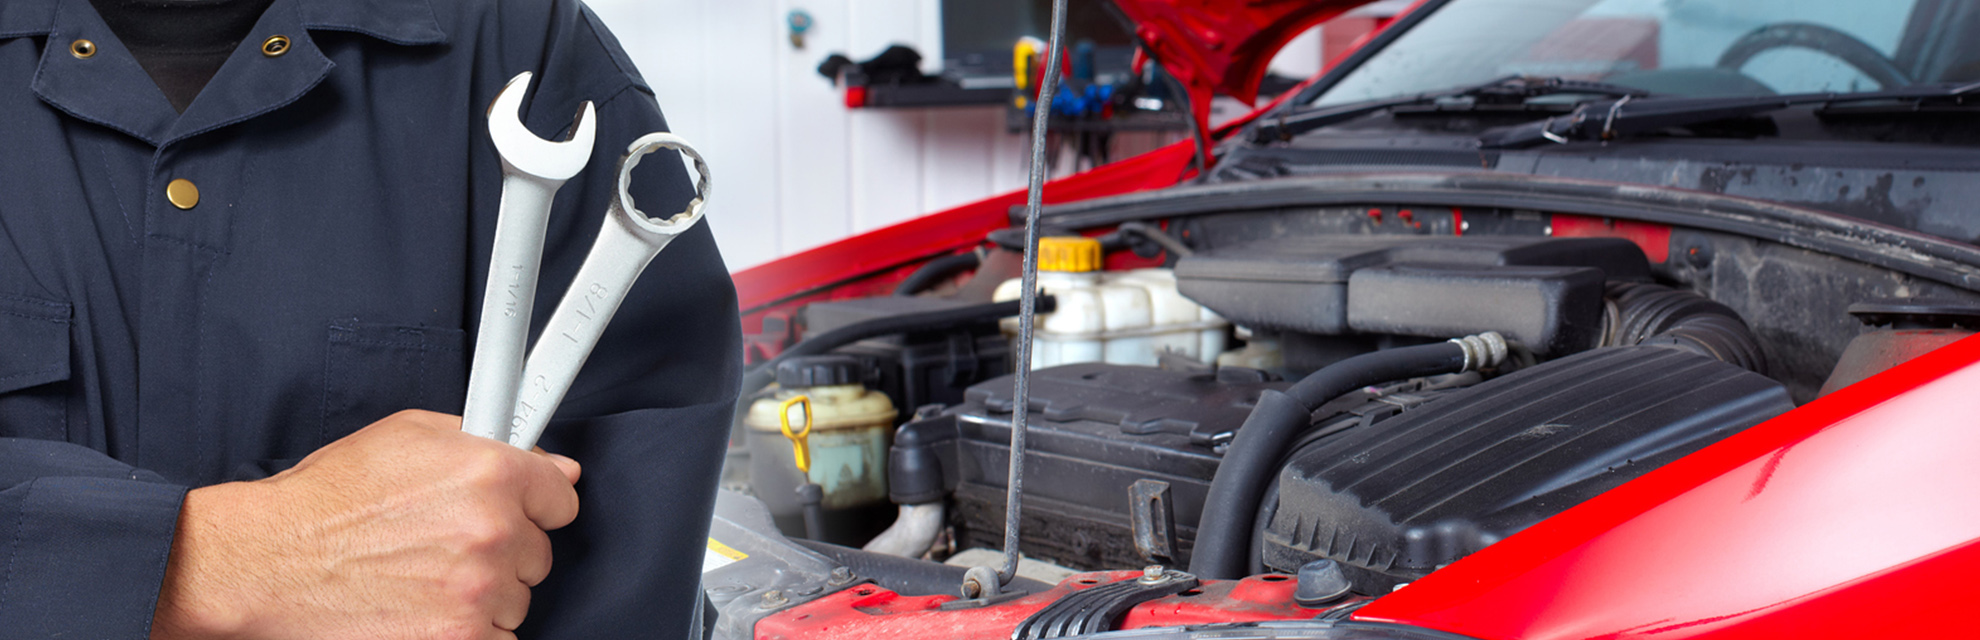 hight resolution of auto repair services by certified mechanics